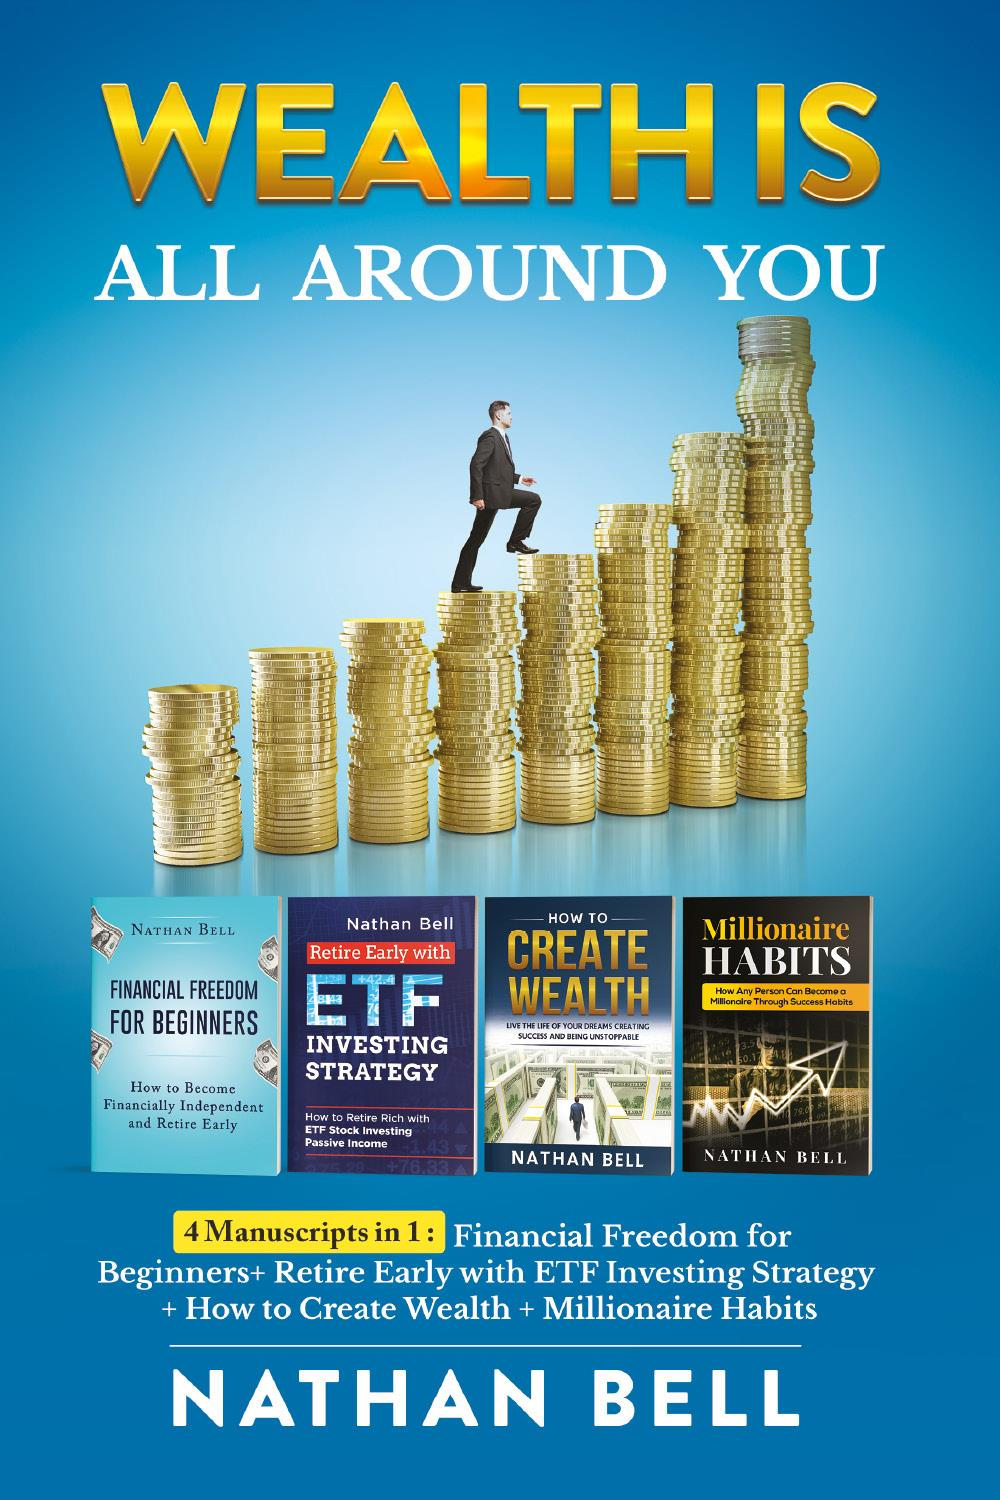 Wealth is All Around You. 4 Manuscripts in 1 : Financial Freedom for Beginners + Retire Early with ETF Investing Strategy + How to Create Wealth + Millionaire Habits